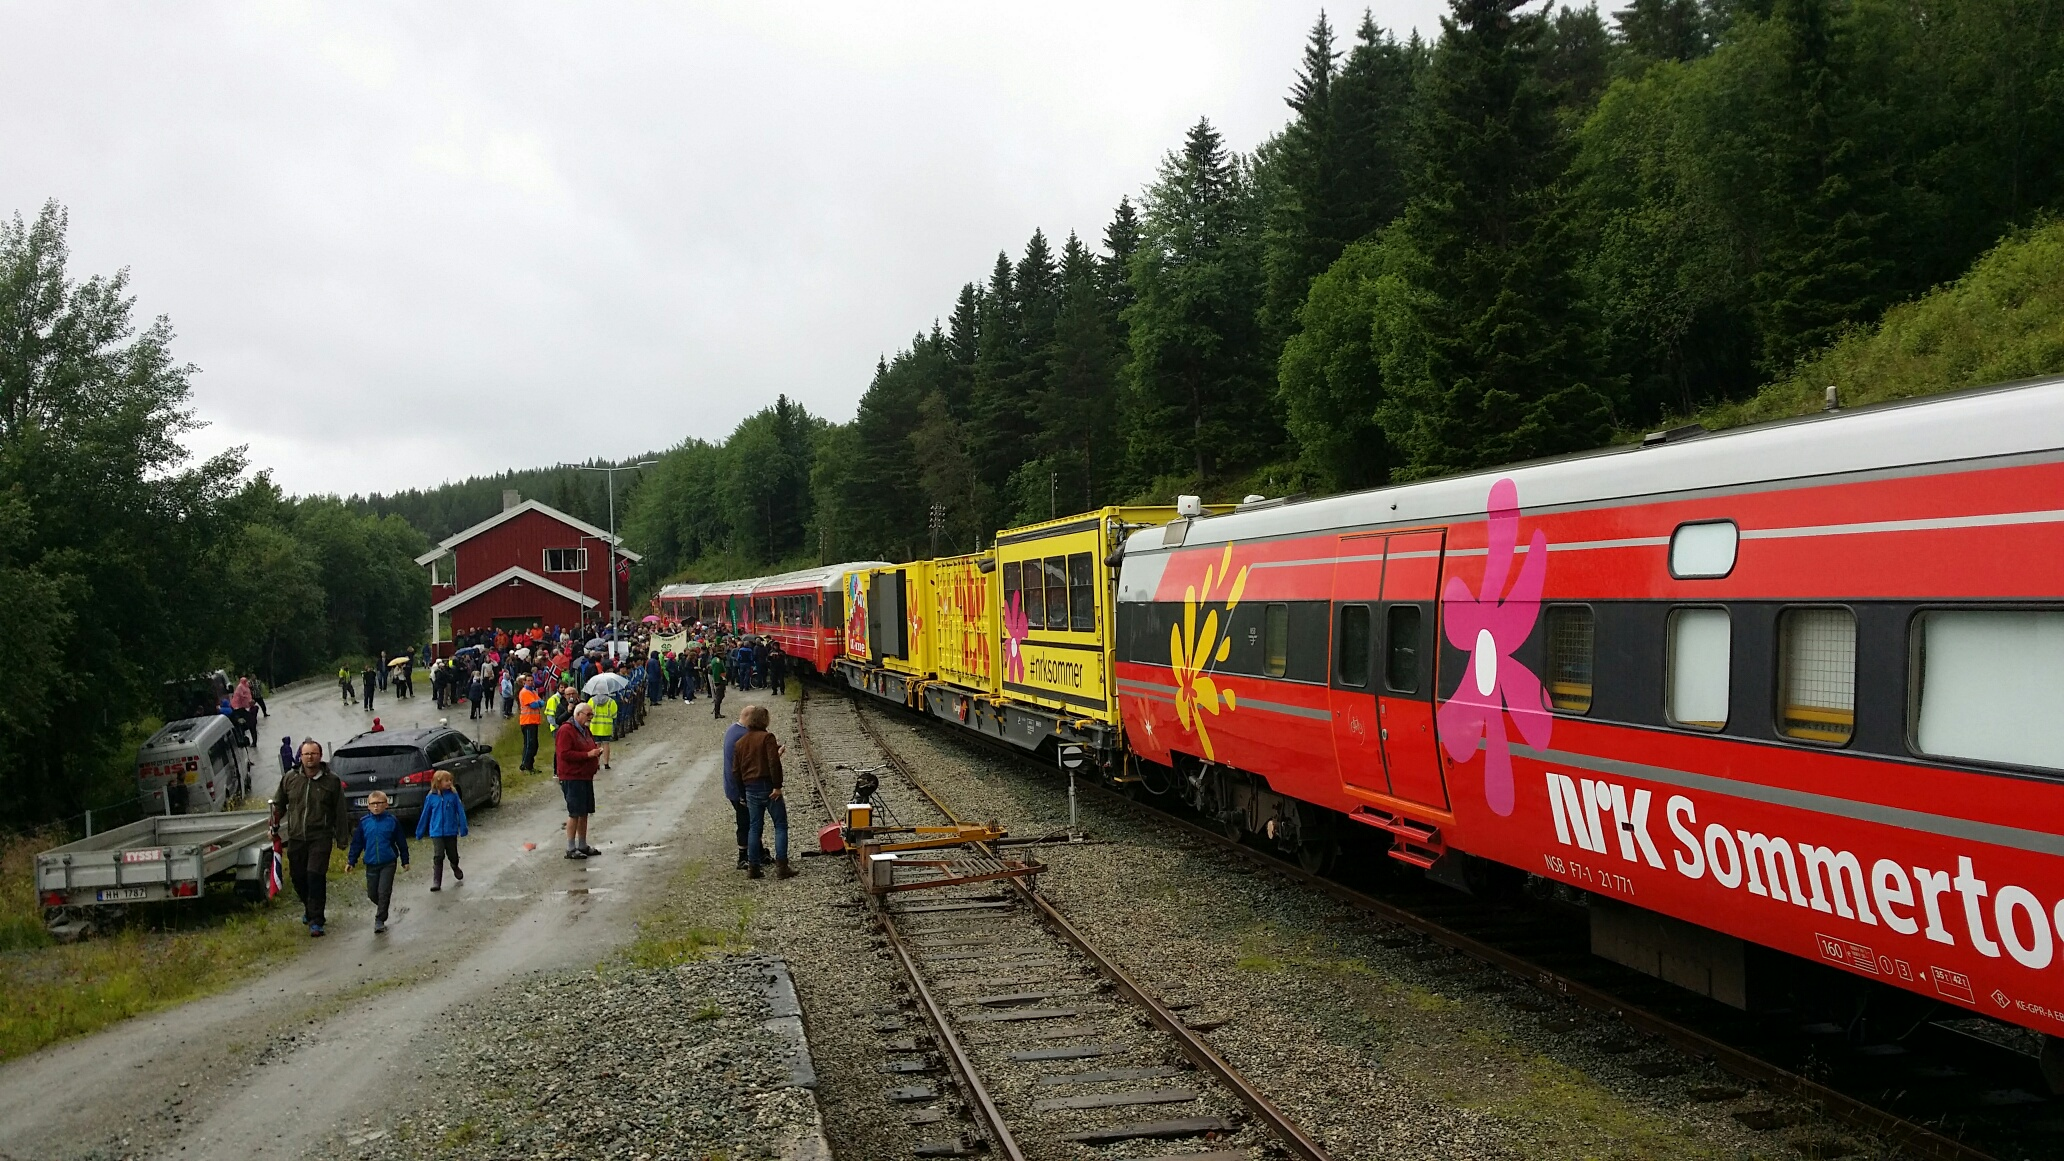 74647a4b7 Sommertoget – Wikipedia